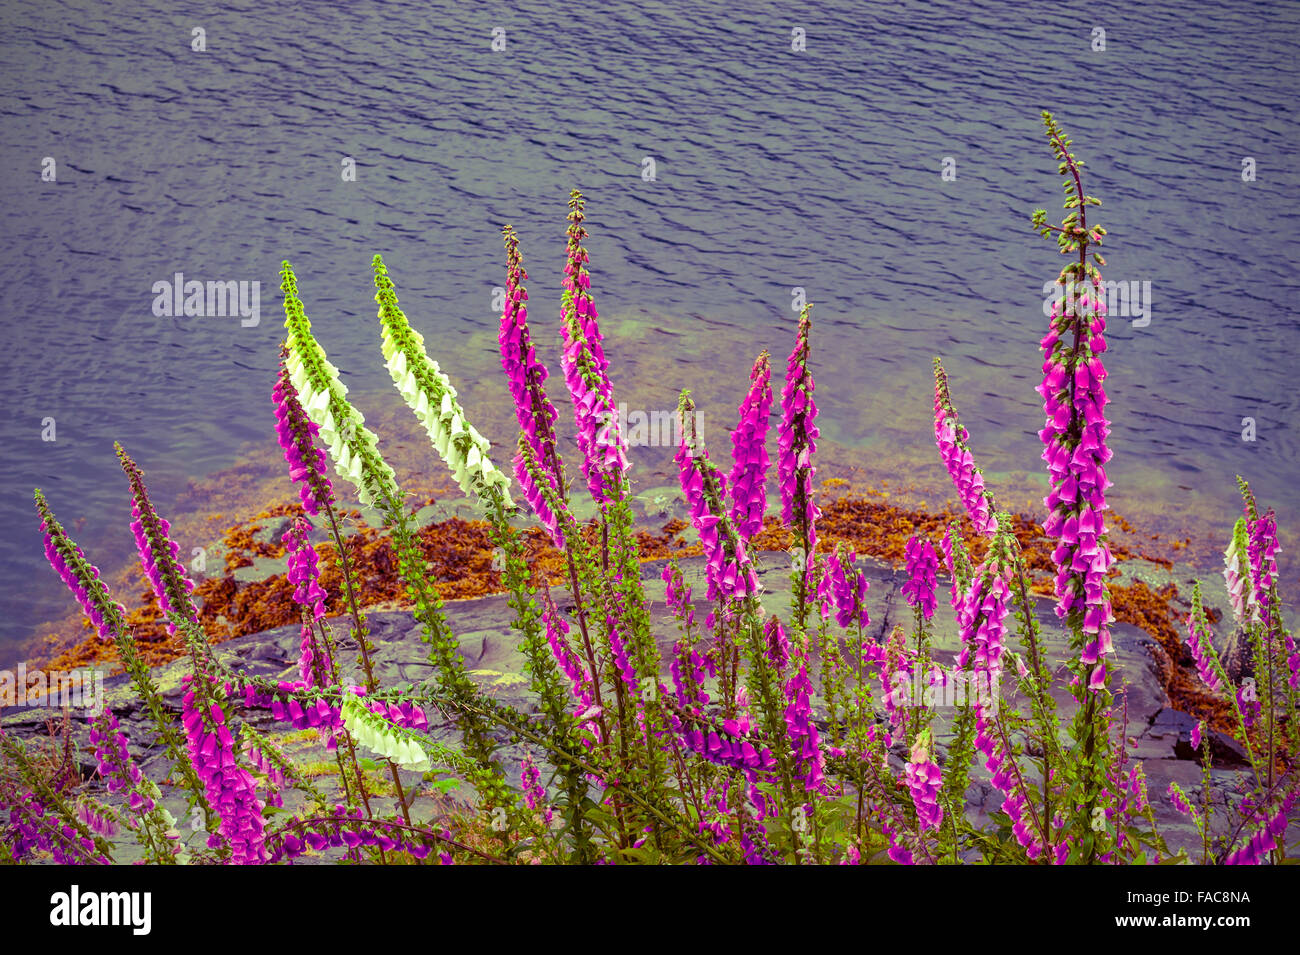 These foxgloves seem to be growing right out of the rocks beside Silver Bay near Sitka, Alaska, USA.  Photography - Stock Image